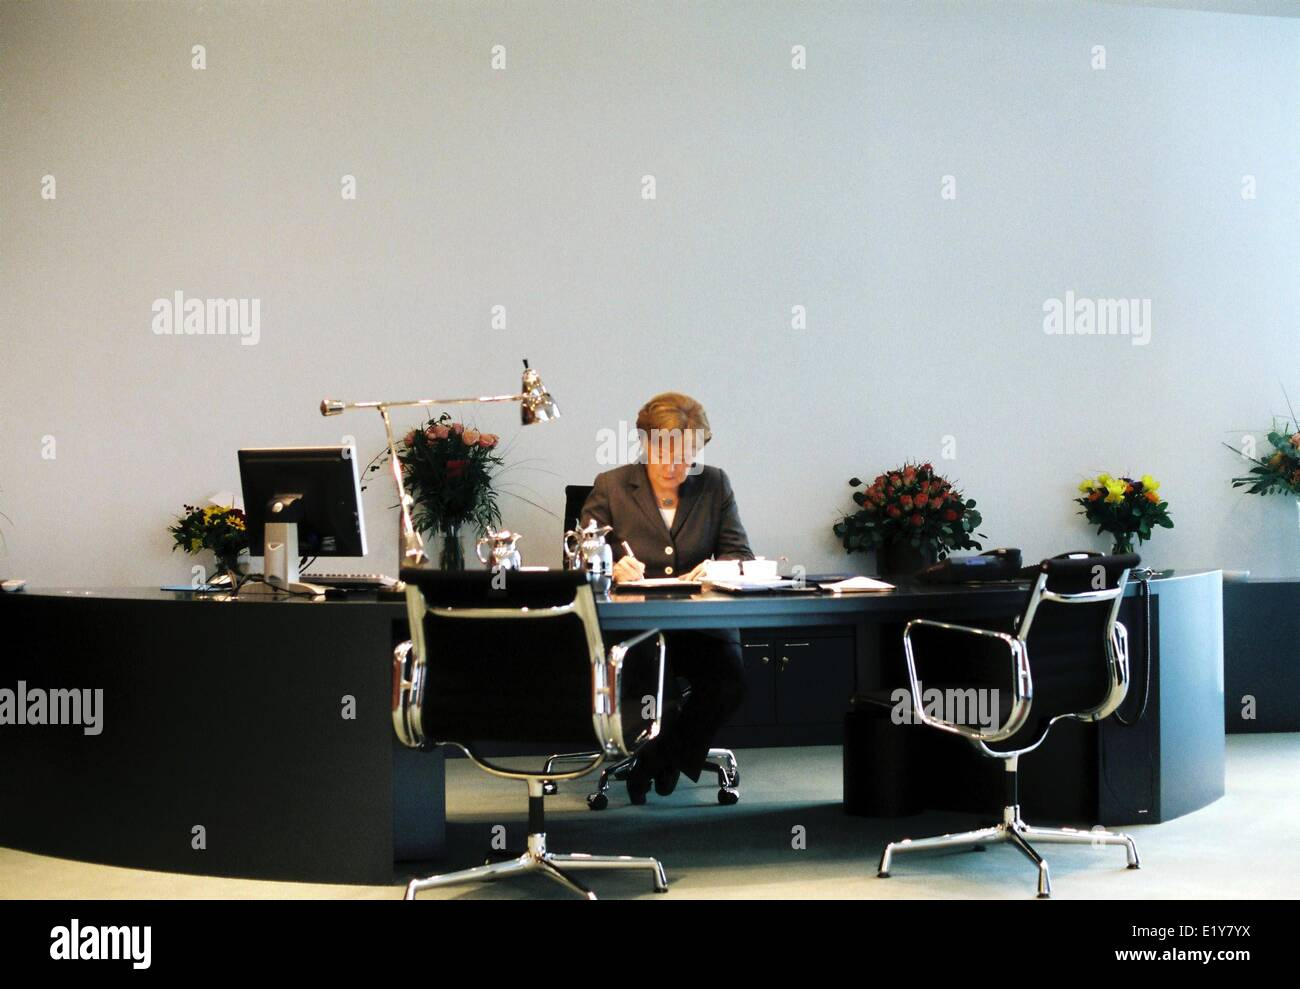 Chancellor Angela Merkel (CDU) sits at her desk in the Federal Chancellor's Office during an interview with - Stock Image